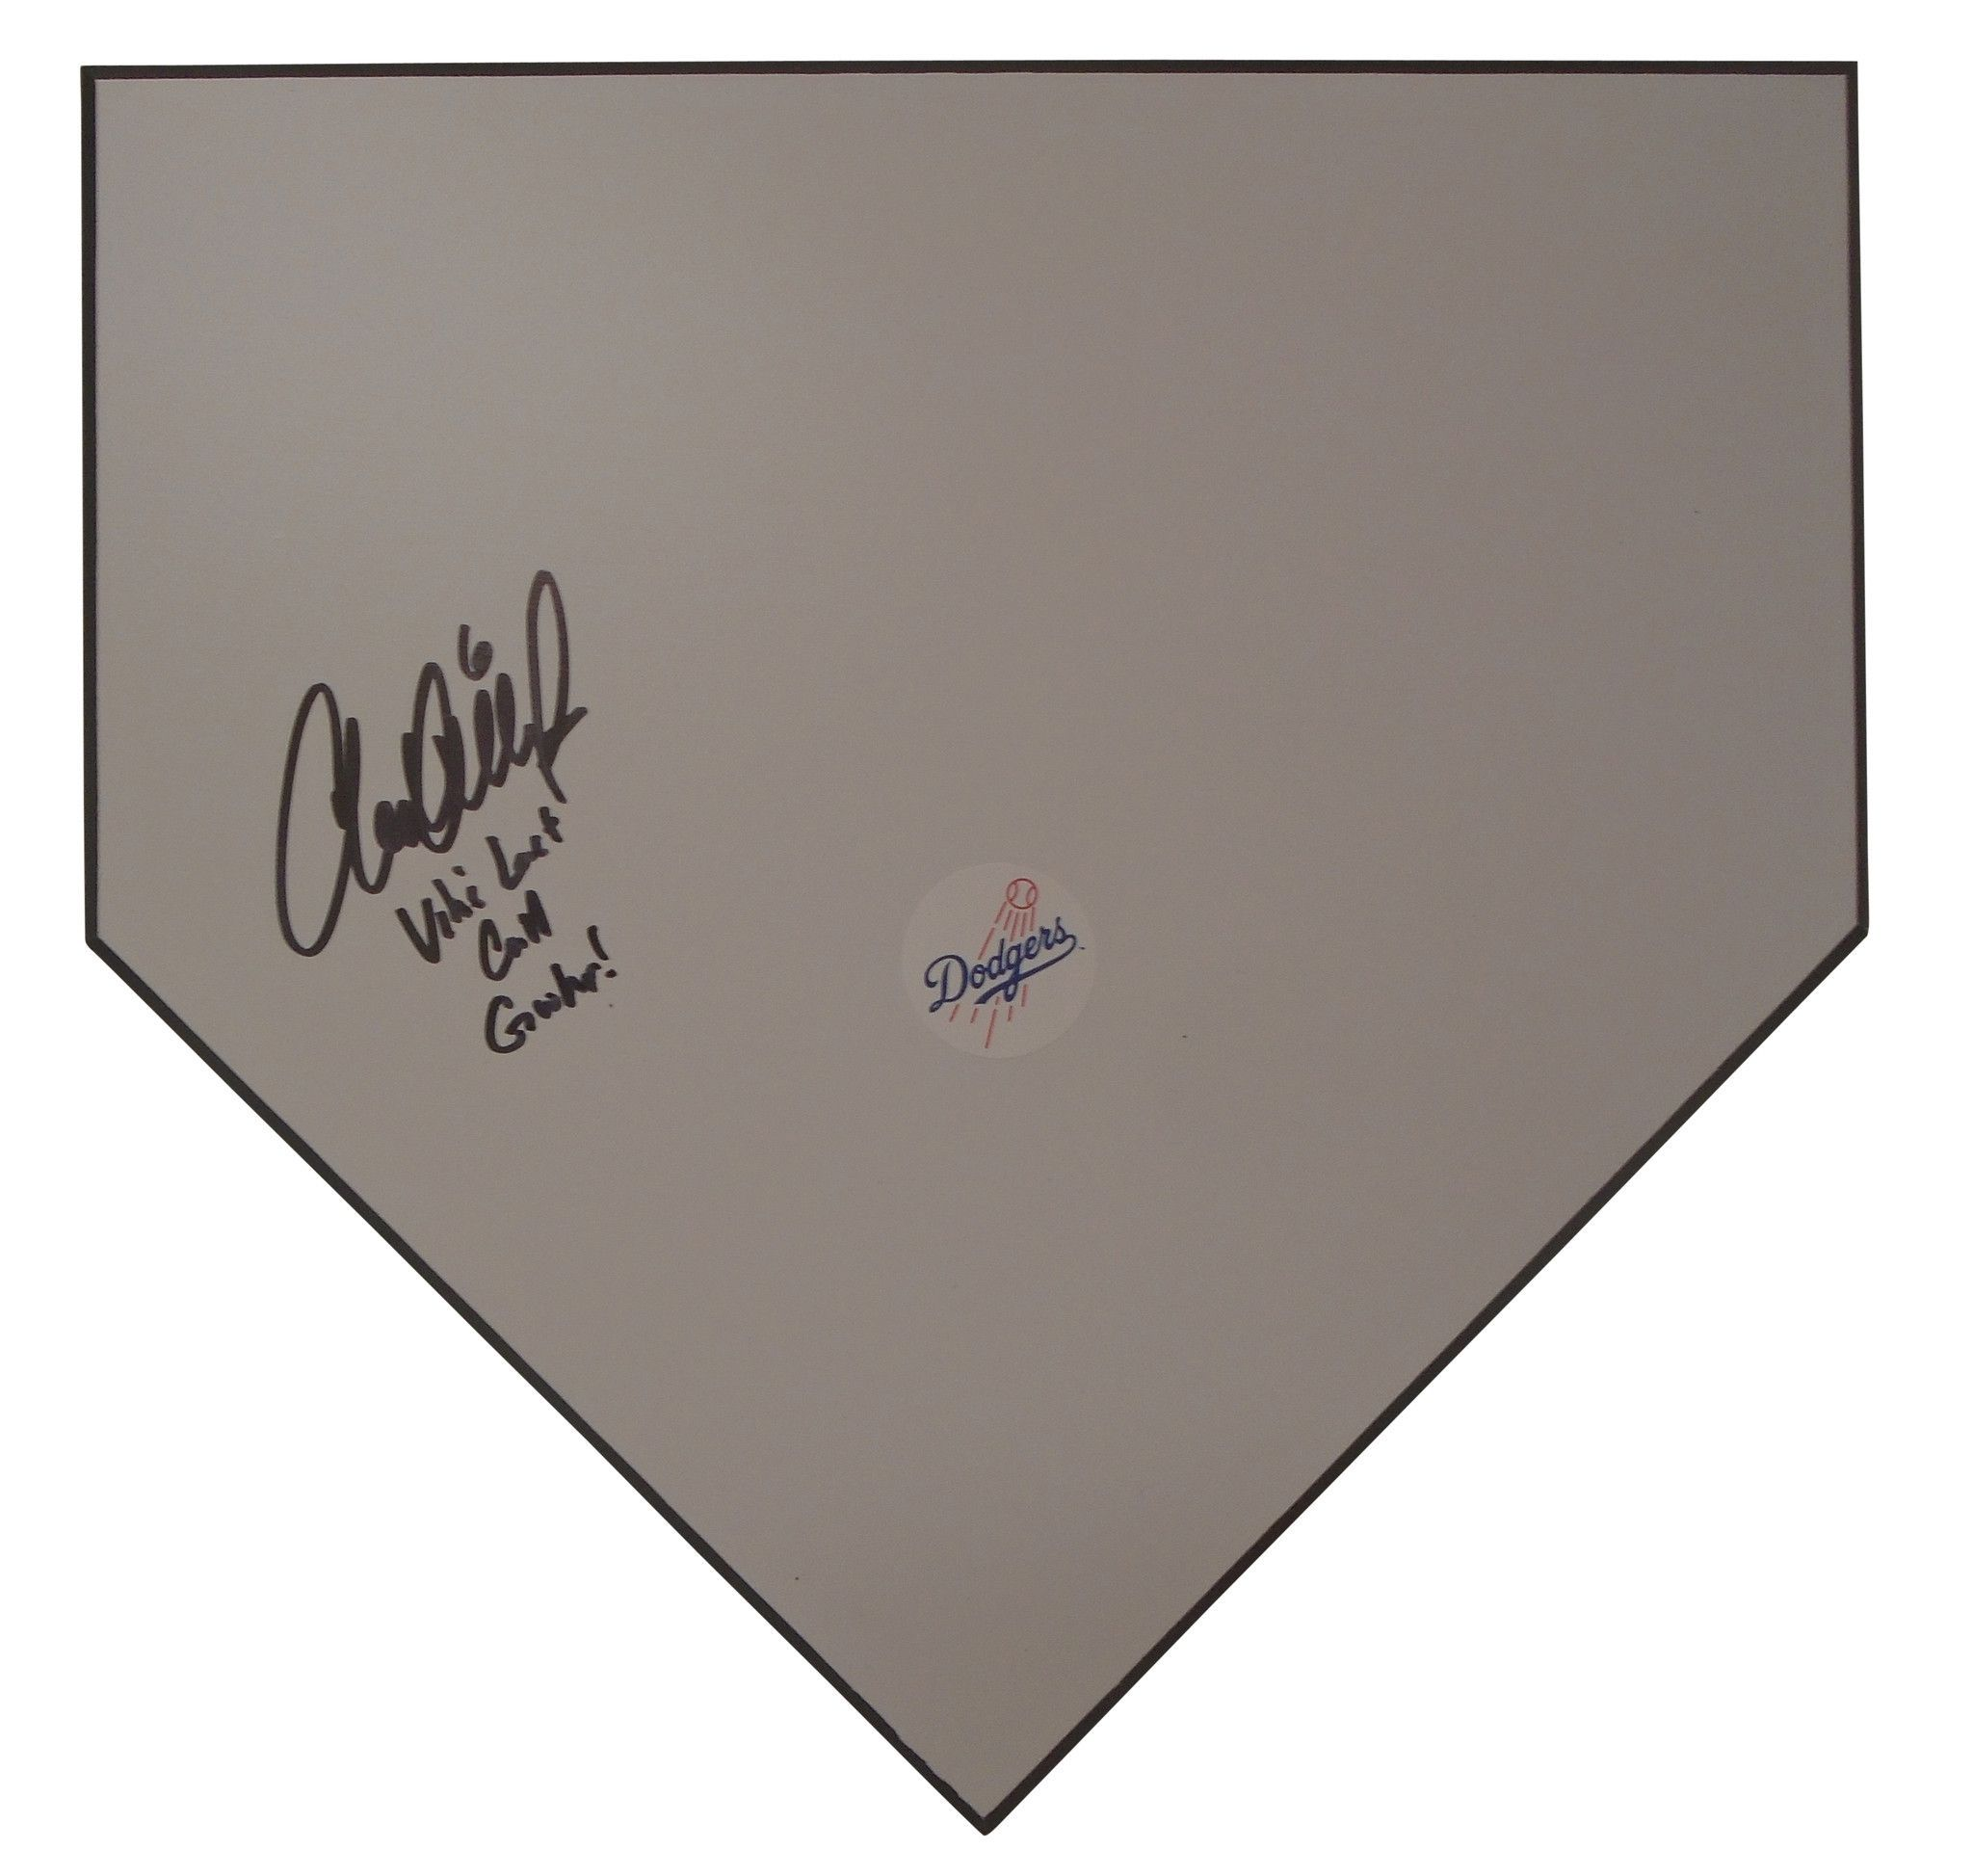 Charlie Culberson Autographed Los Angeles Dodgers Home Plate w/ Inscription, Proof Photo